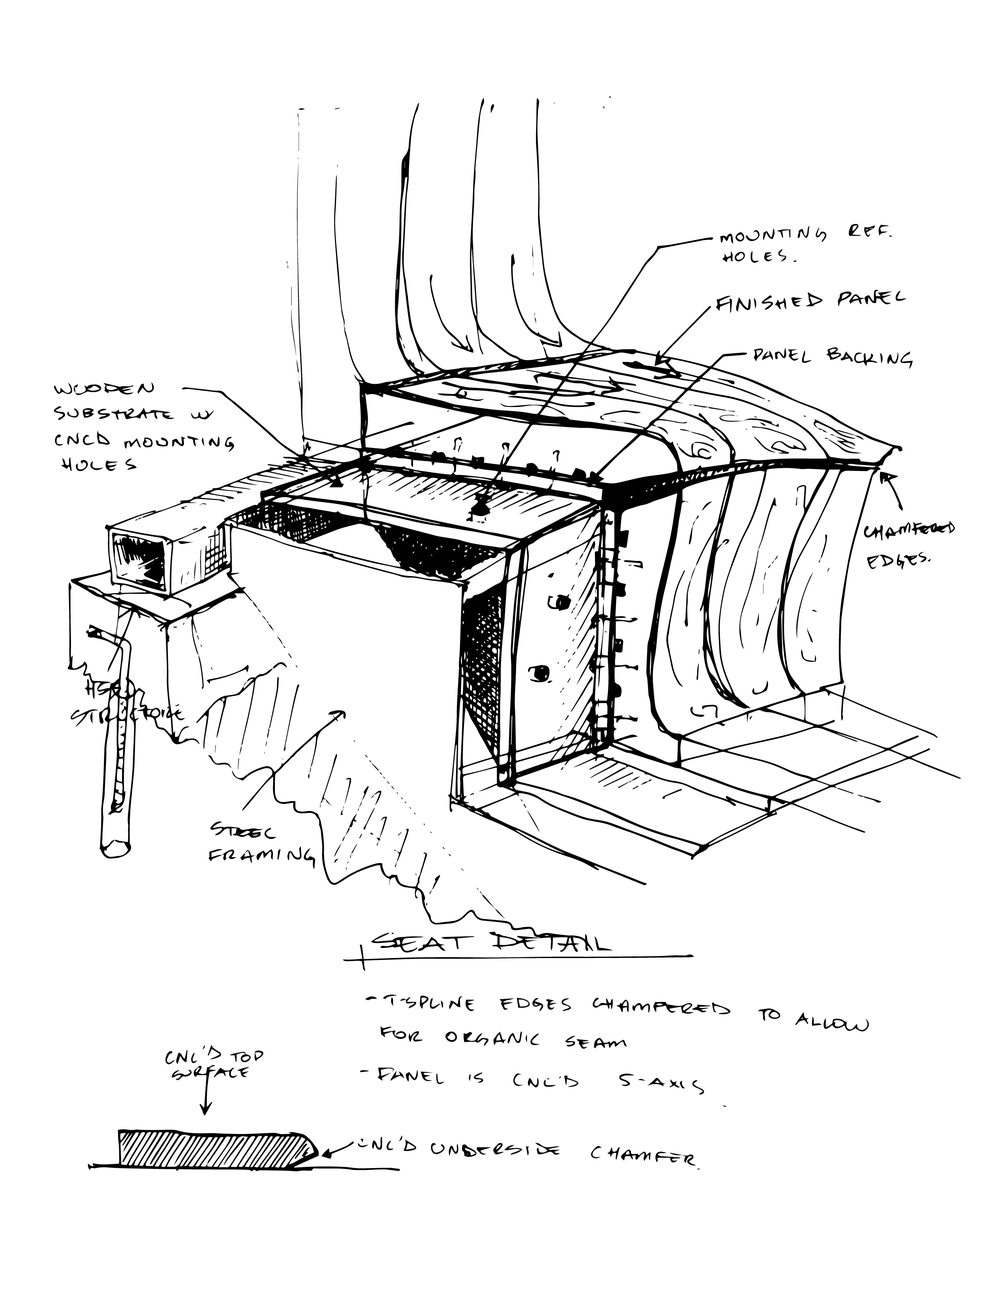 Sketch_SeatDetail.jpg